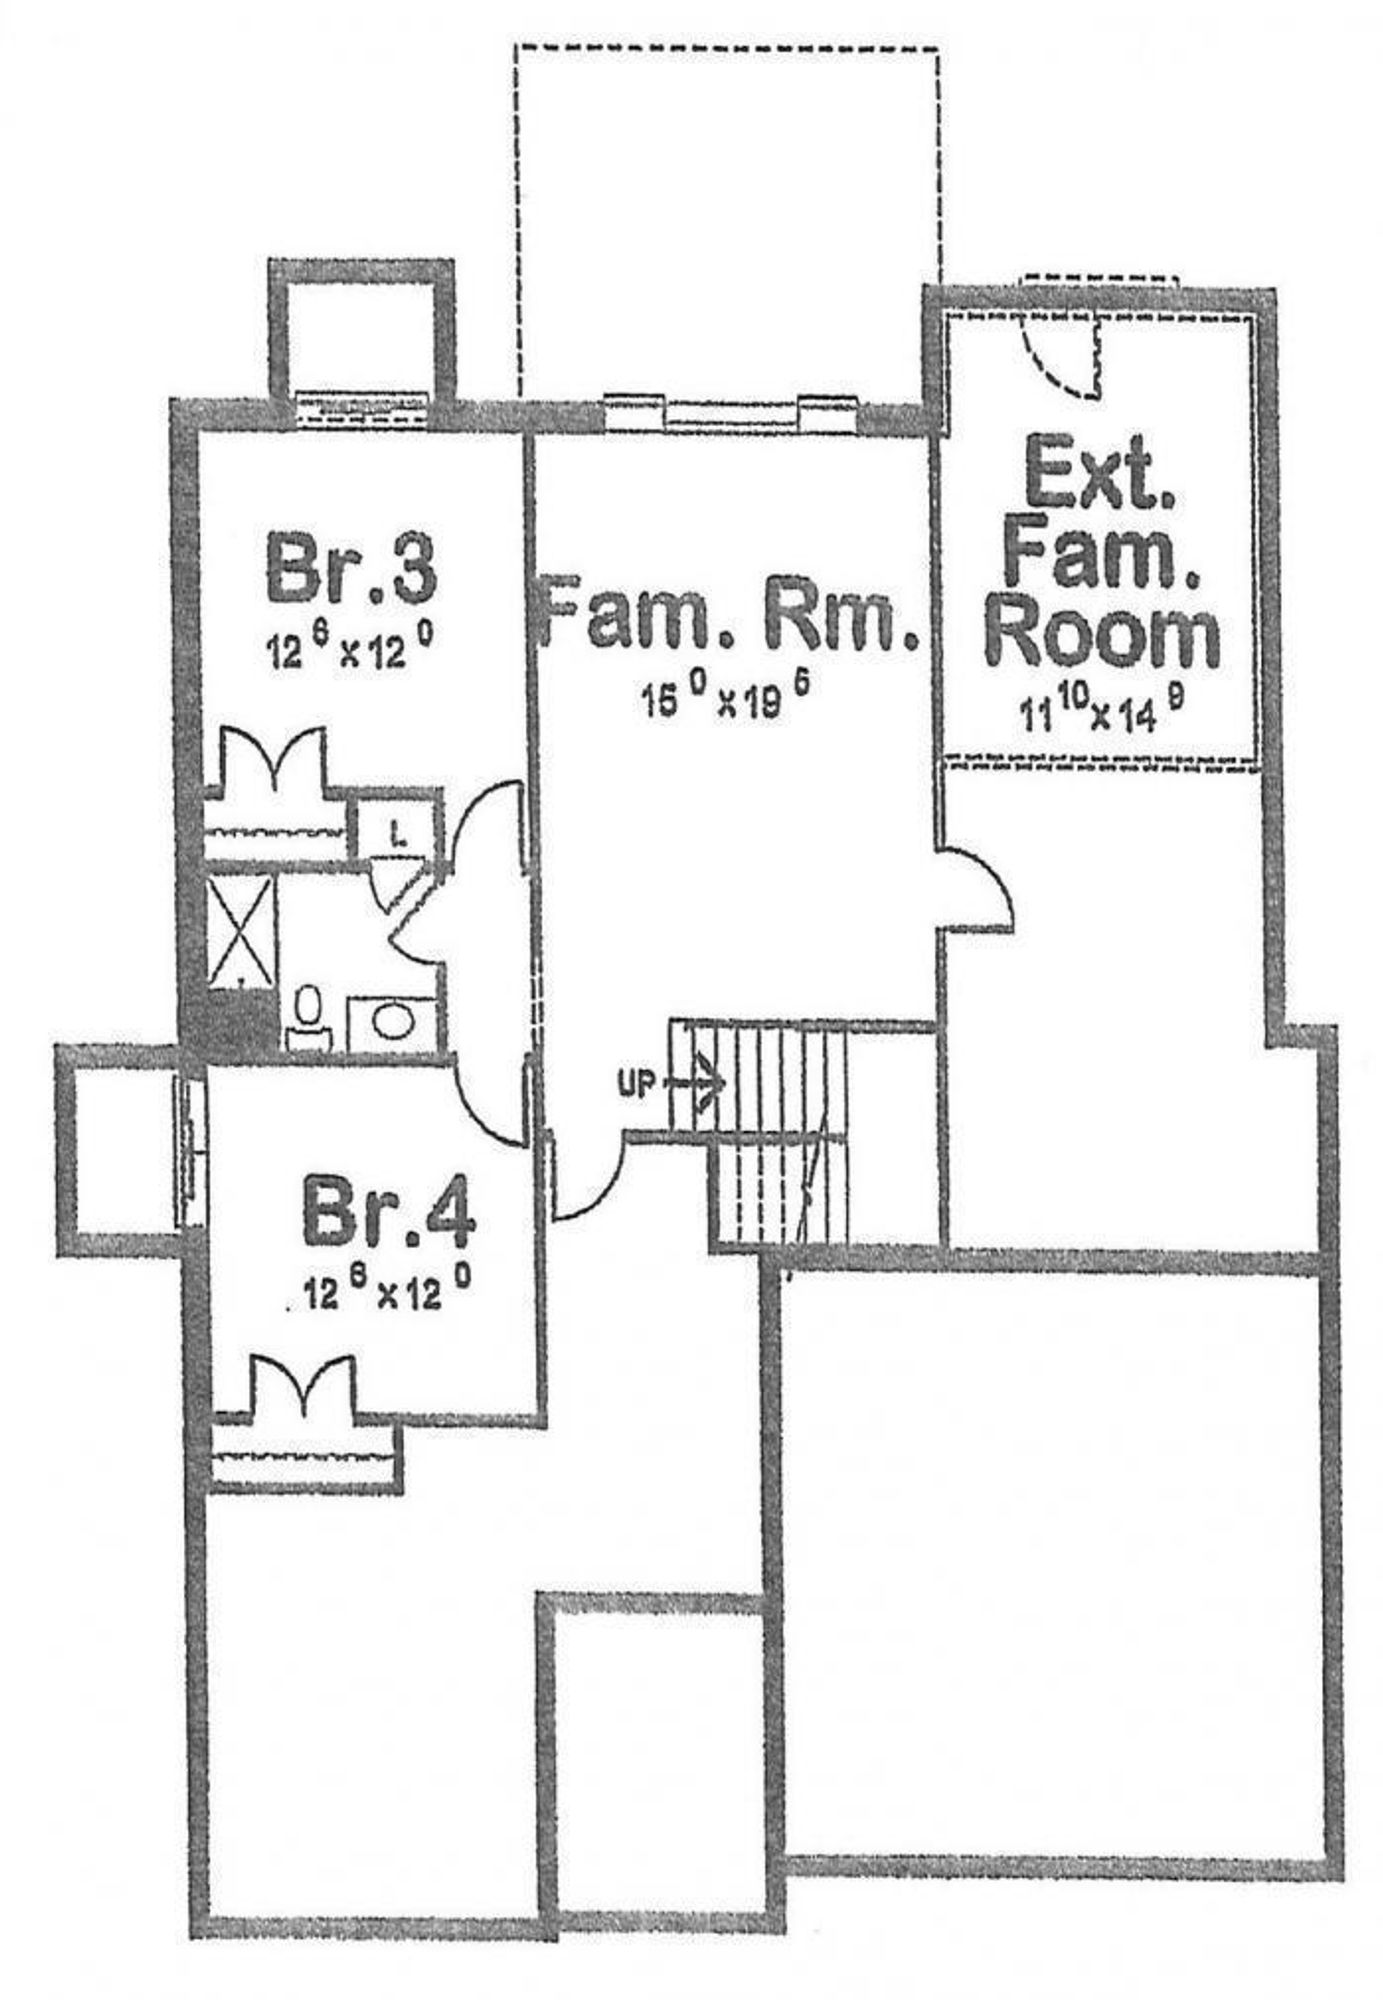 Brentwood lower level footprint